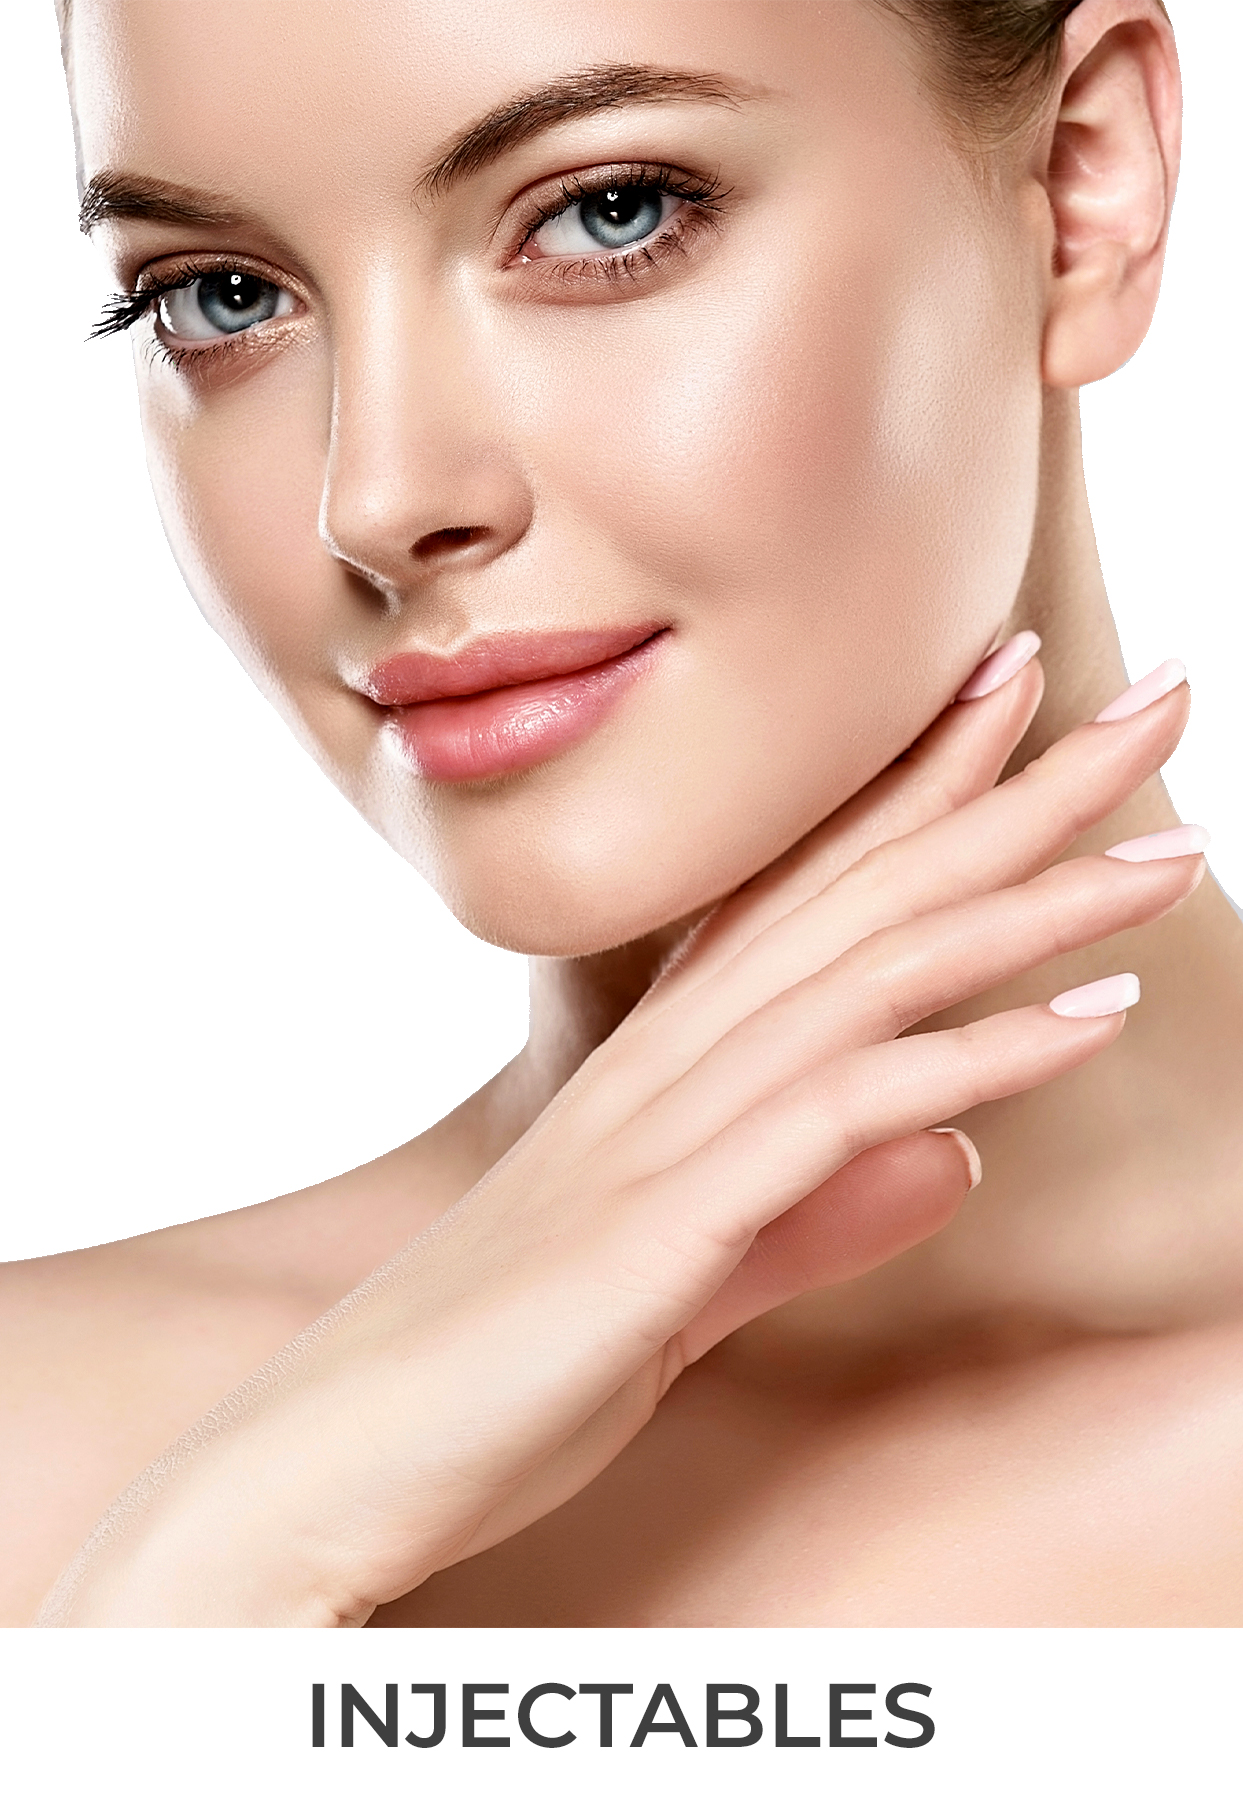 plastic surgery and aesthetic services in Oklahoma